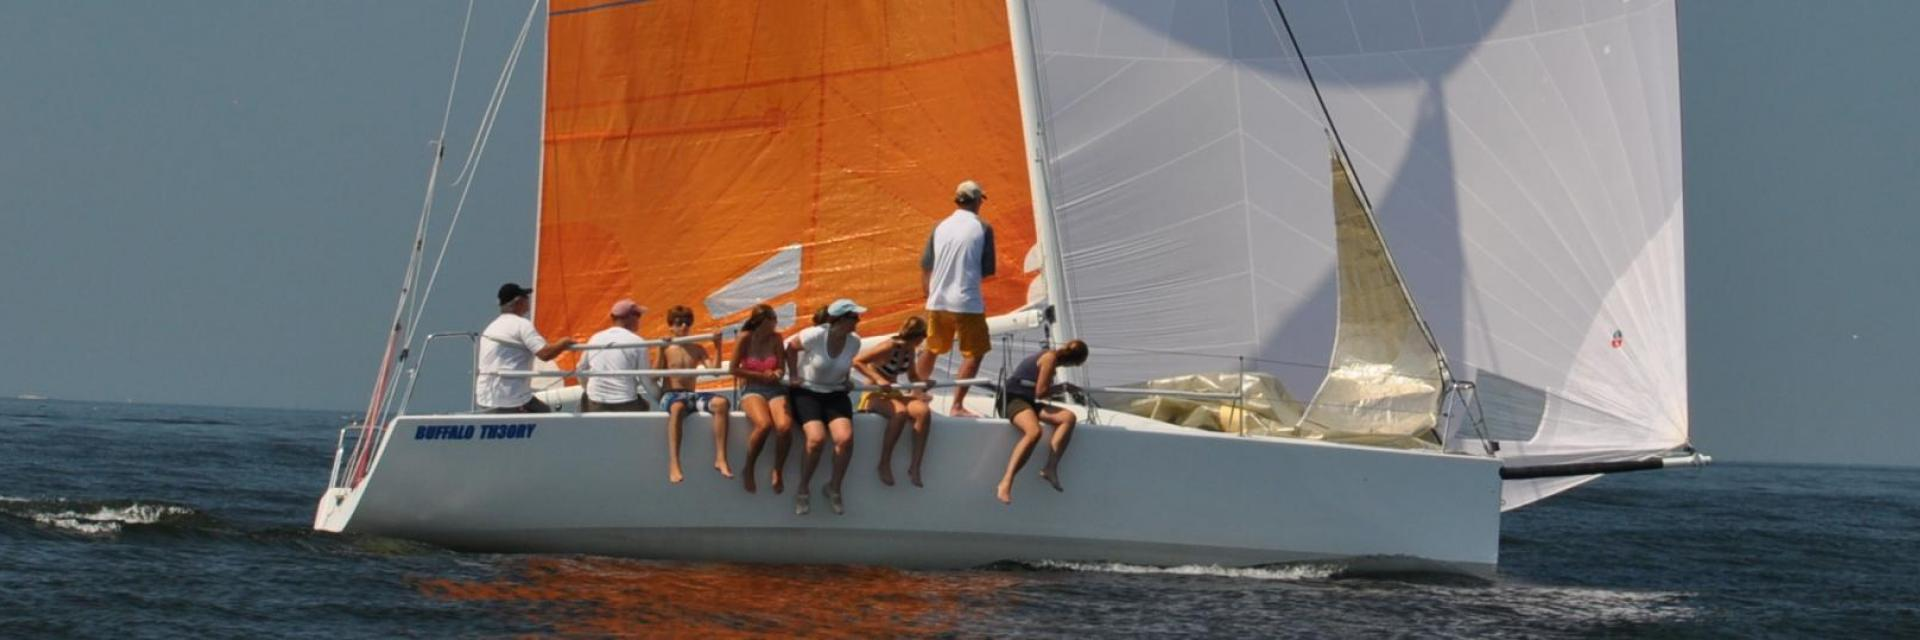 find a crew for sailing